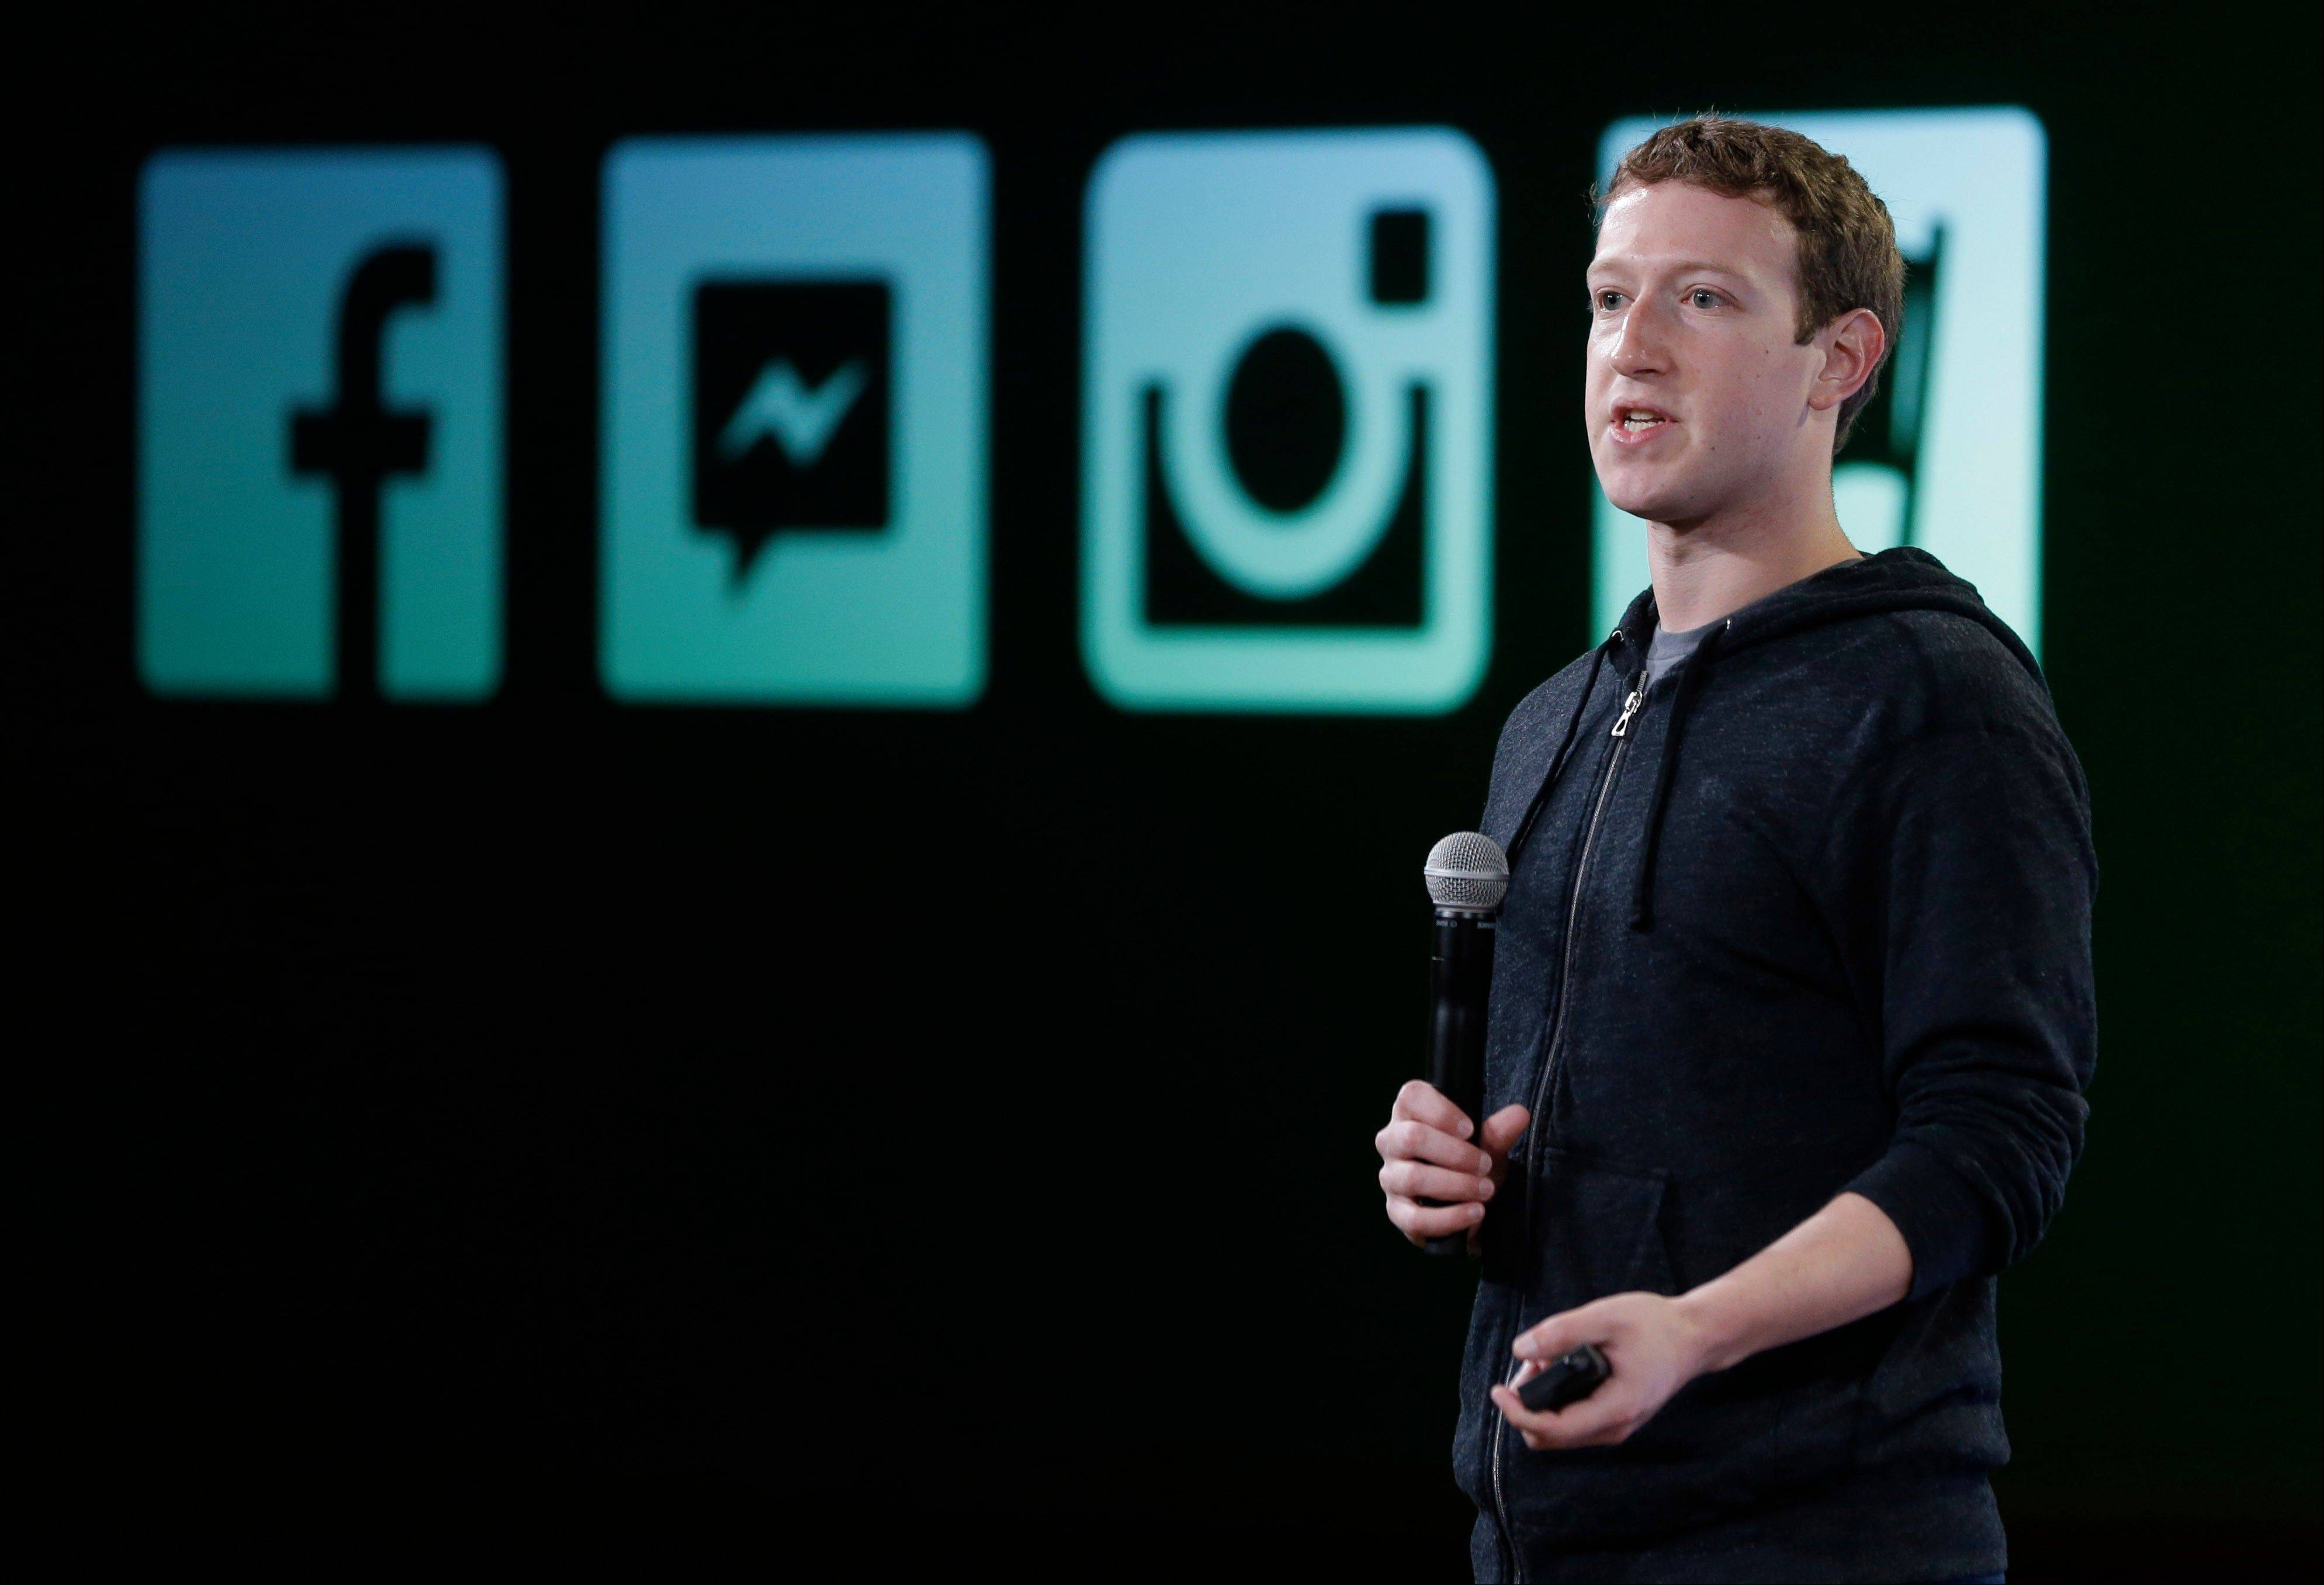 Facebook CEO Mark Zuckerberg talks about Instagram's new video feature at the company's headquarters in Menlo Park, Calif.